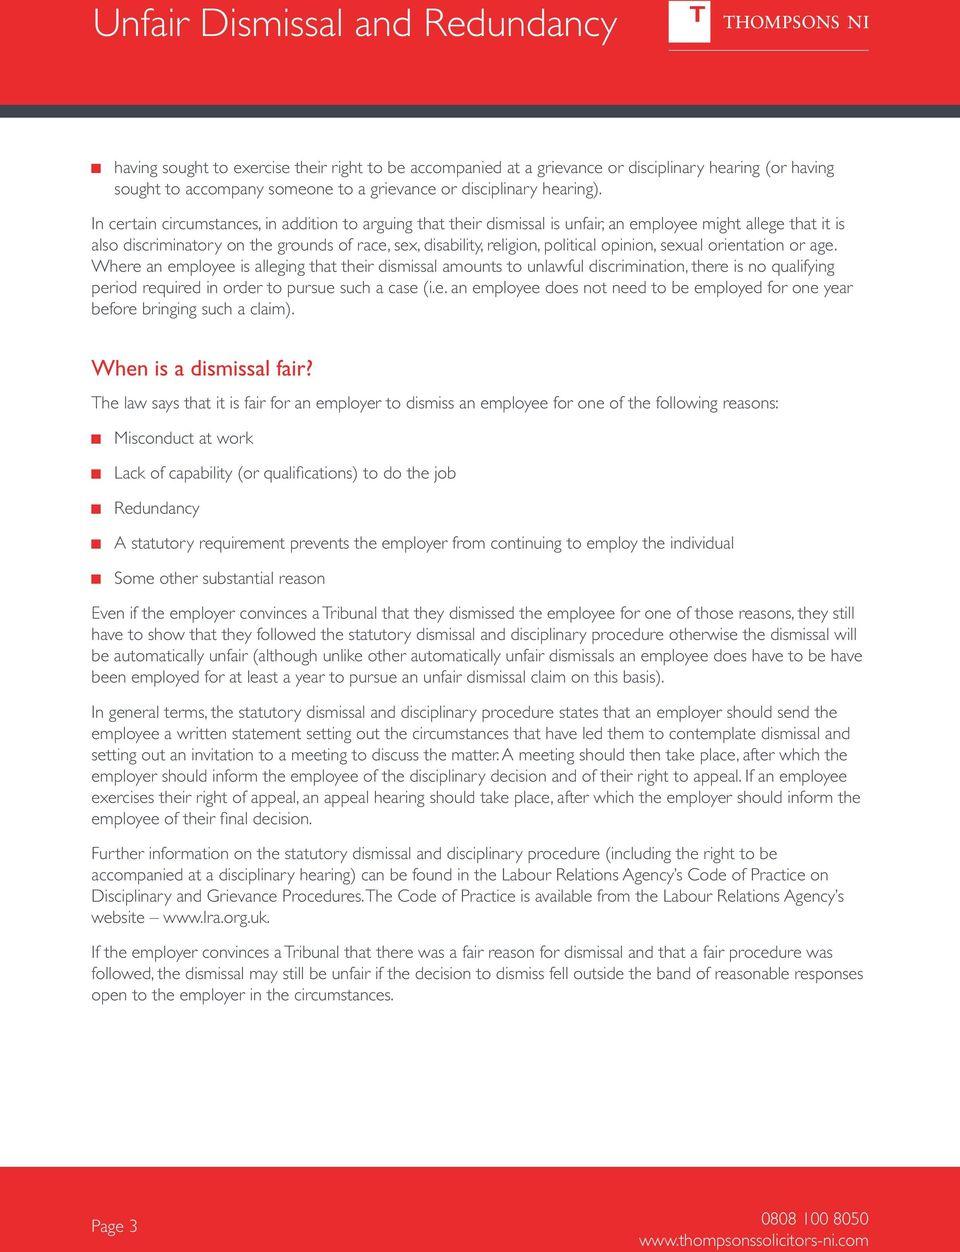 opinion, sexual orientation or age. Where an employee is alleging that their dismissal amounts to unlawful discrimination, there is no qualifying period required in order to pursue such a case (i.e. an employee does not need to be employed for one year before bringing such a claim).